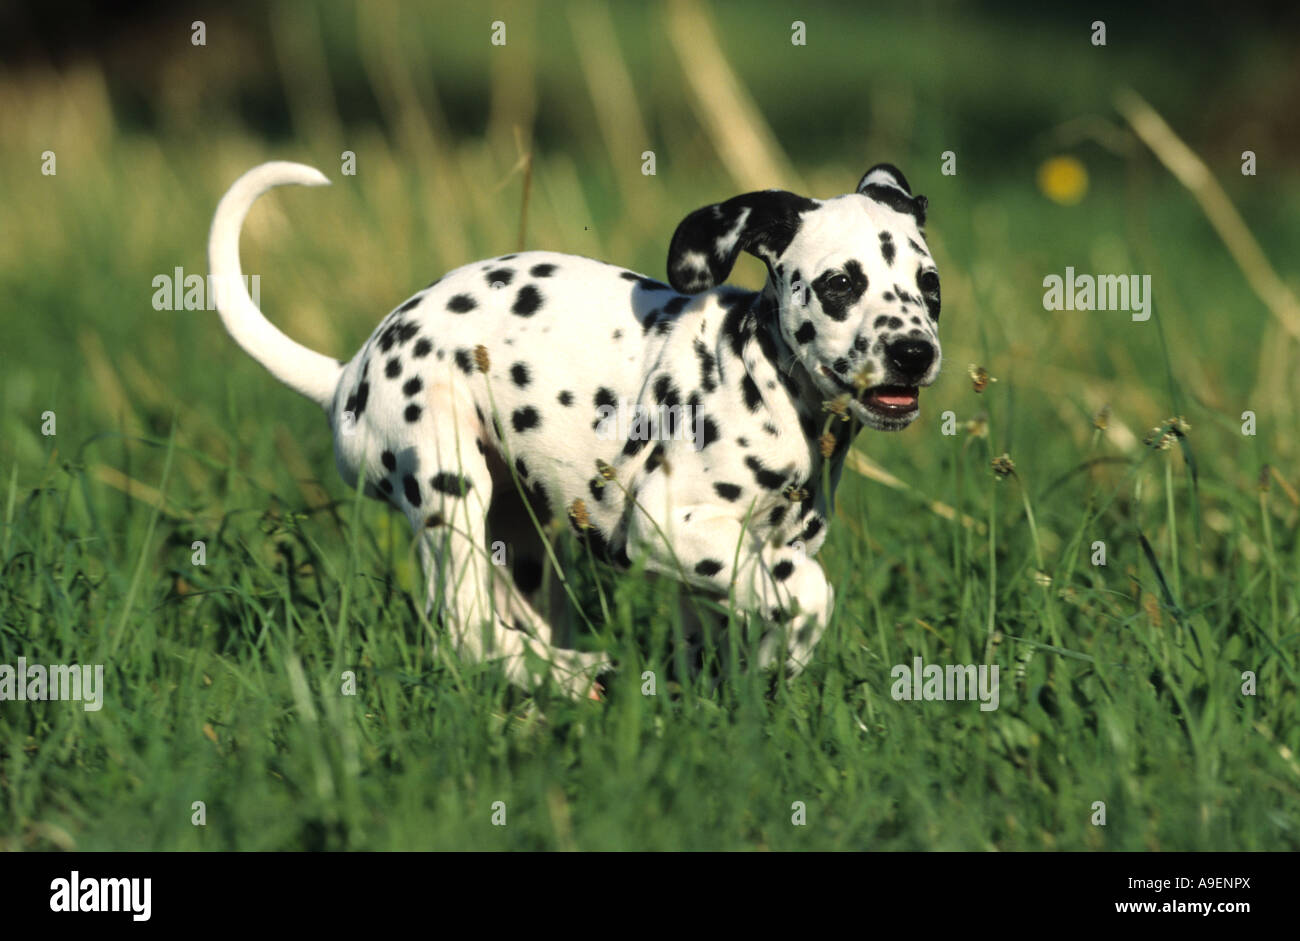 Dalmatian (Canis lupus familiaris), puppy running on meadow - Stock Image